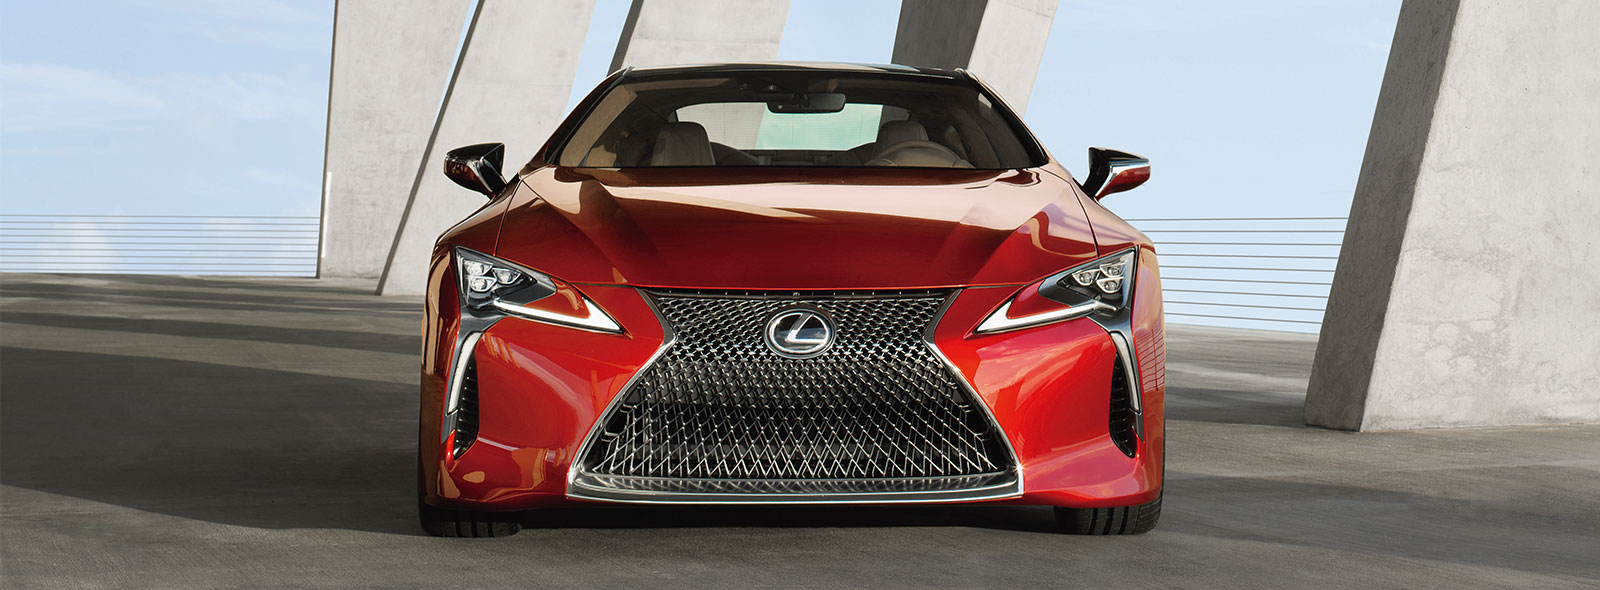 2017 Lexus LC 500 Design Gallery 005